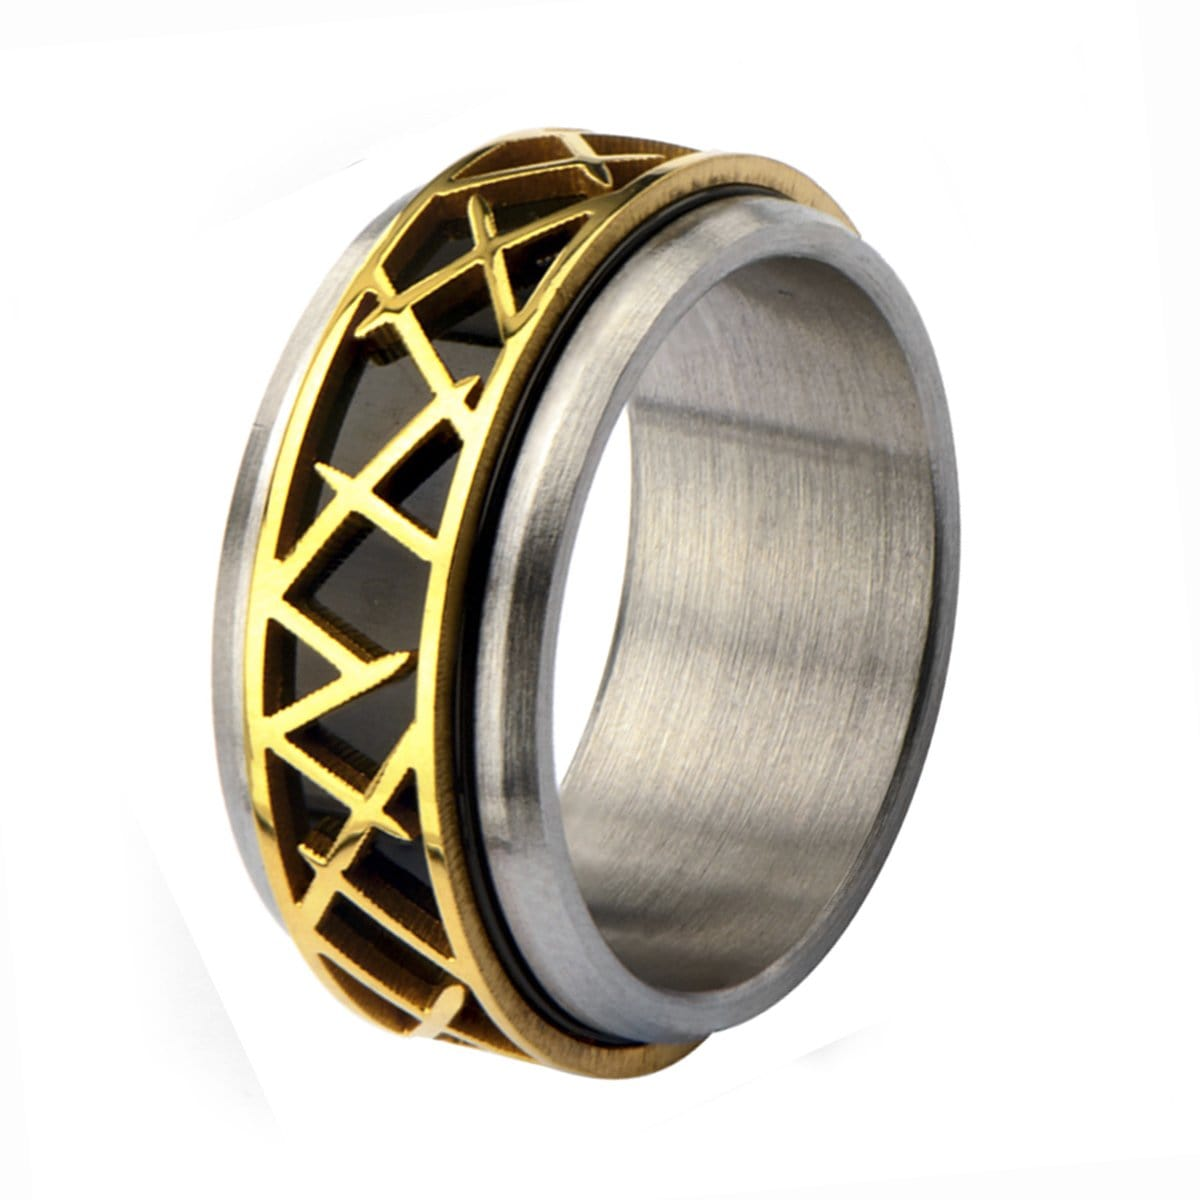 Gold, Black & Silver Stainless Steel Crown of Thorns Ring - Inox Jewelry India